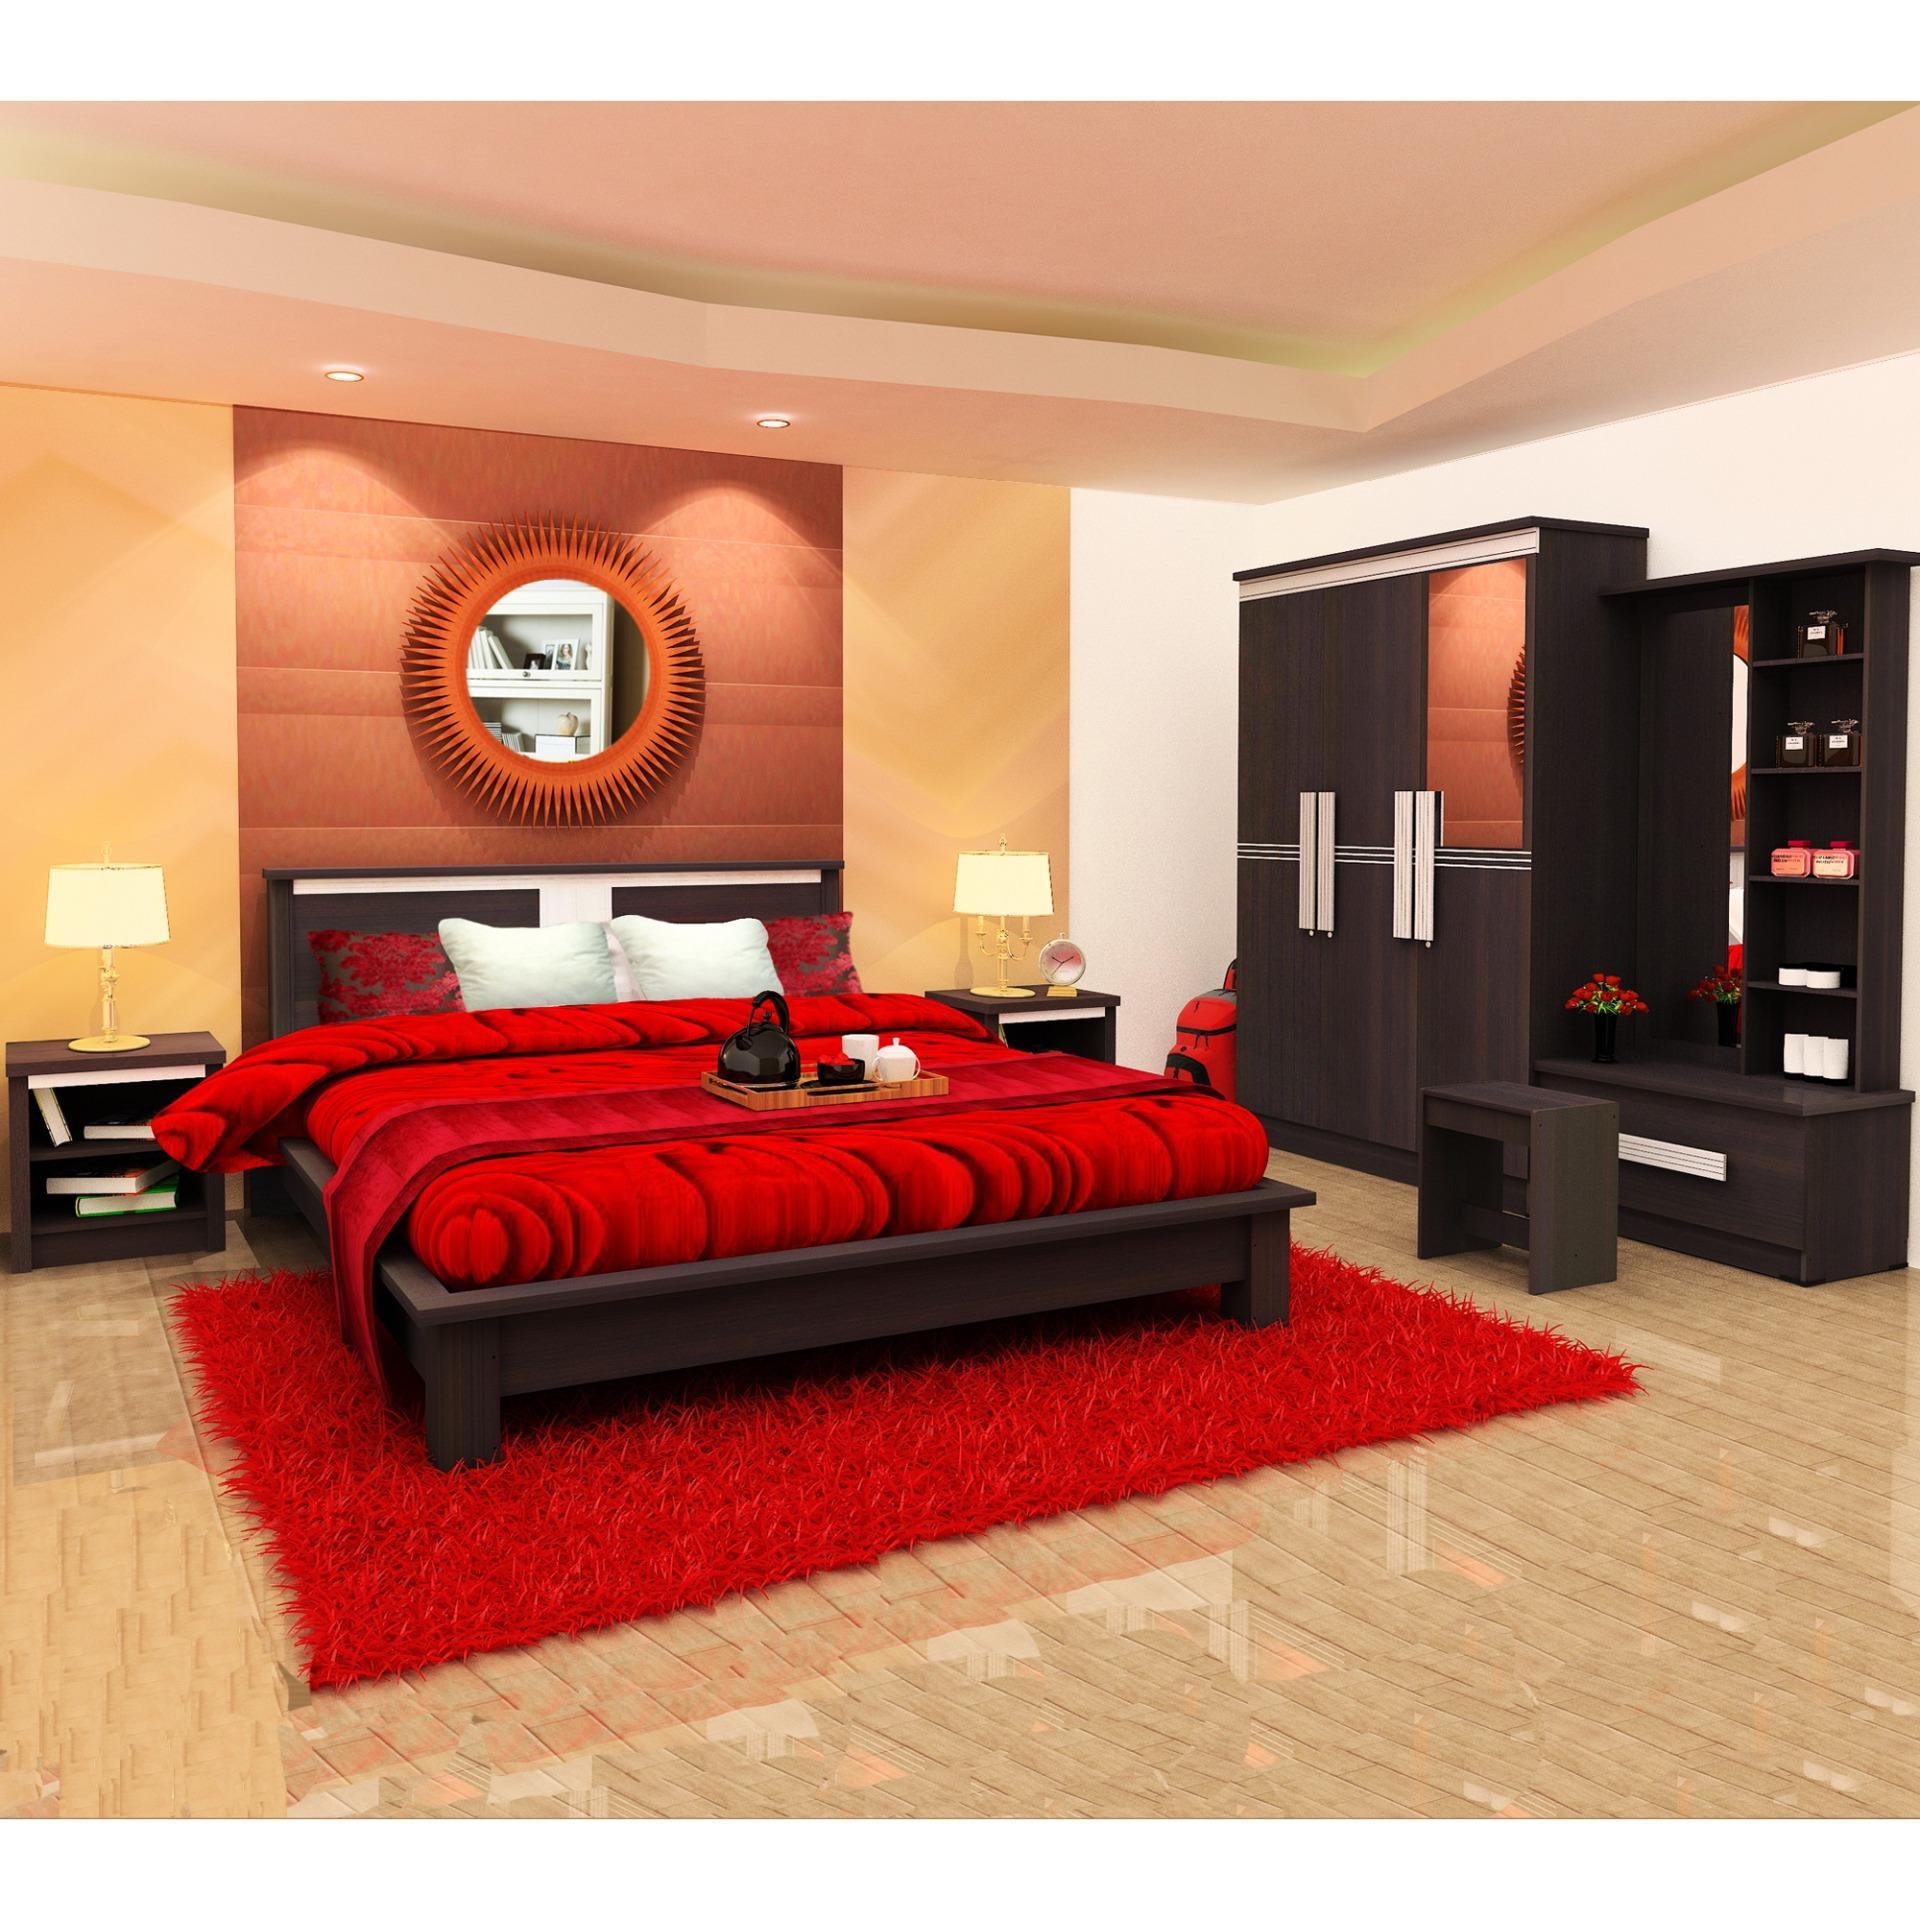 Lemari Pakaian, Ranjang, Nakas, Meja Rias (bedroom Set Red) By Furniture Minimalis